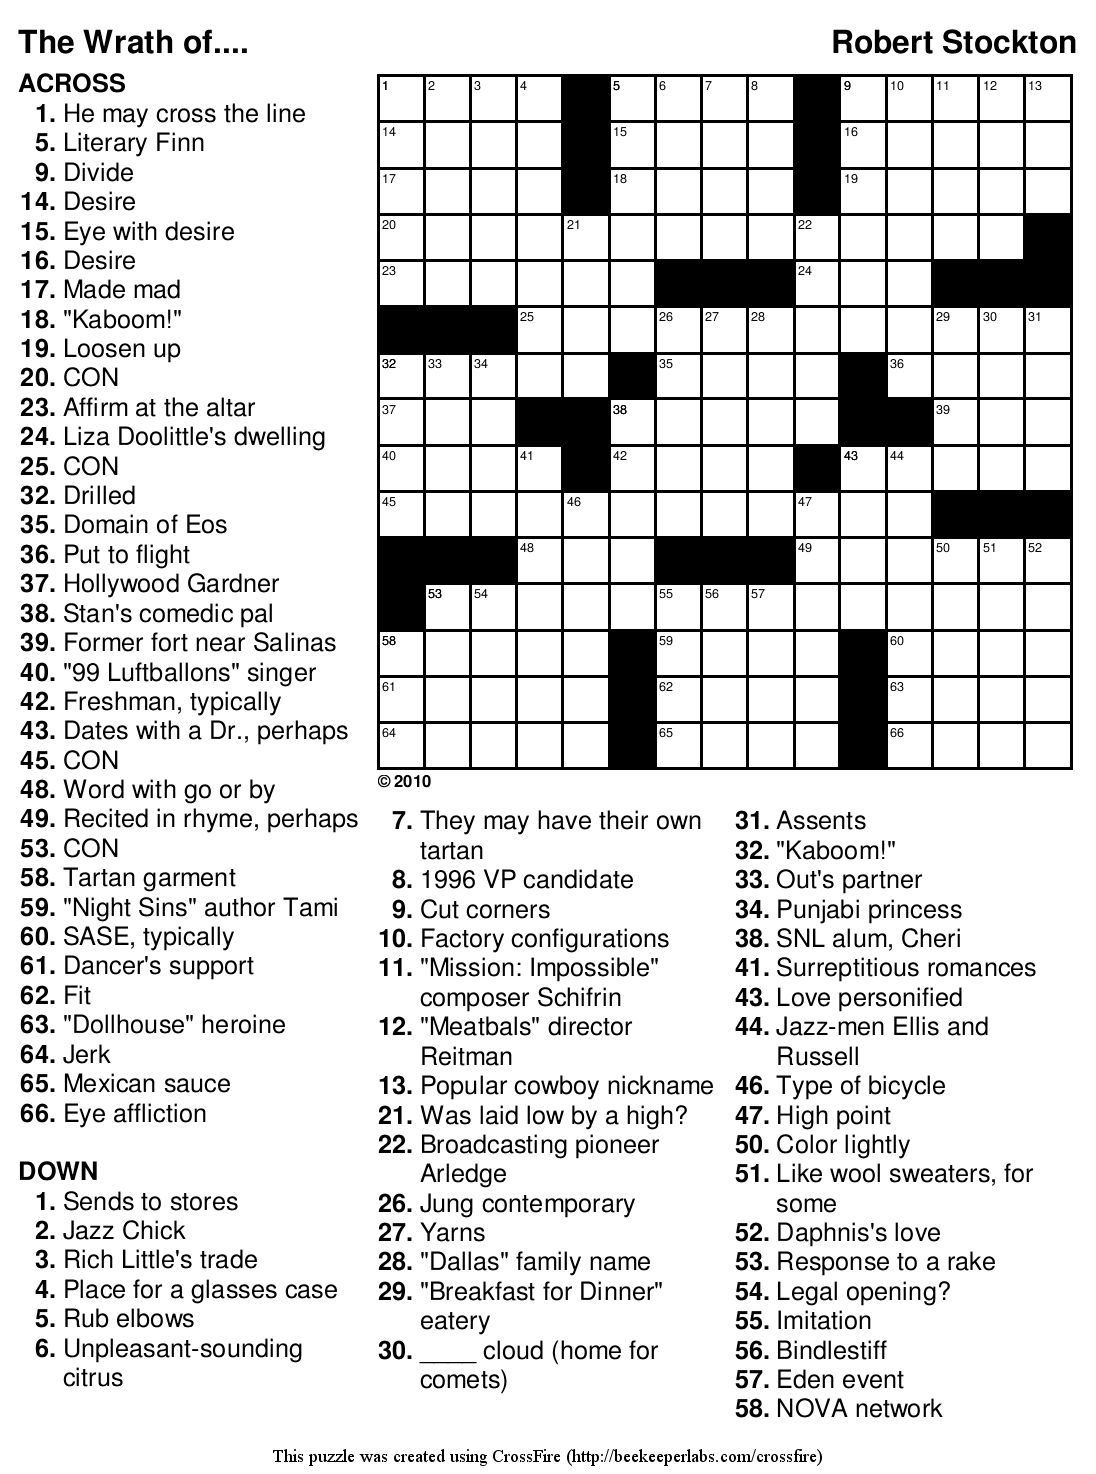 Marvelous Crossword Puzzles Easy Printable Free Org | Chas's Board - Free Printable Crossword Puzzles Medium Difficulty